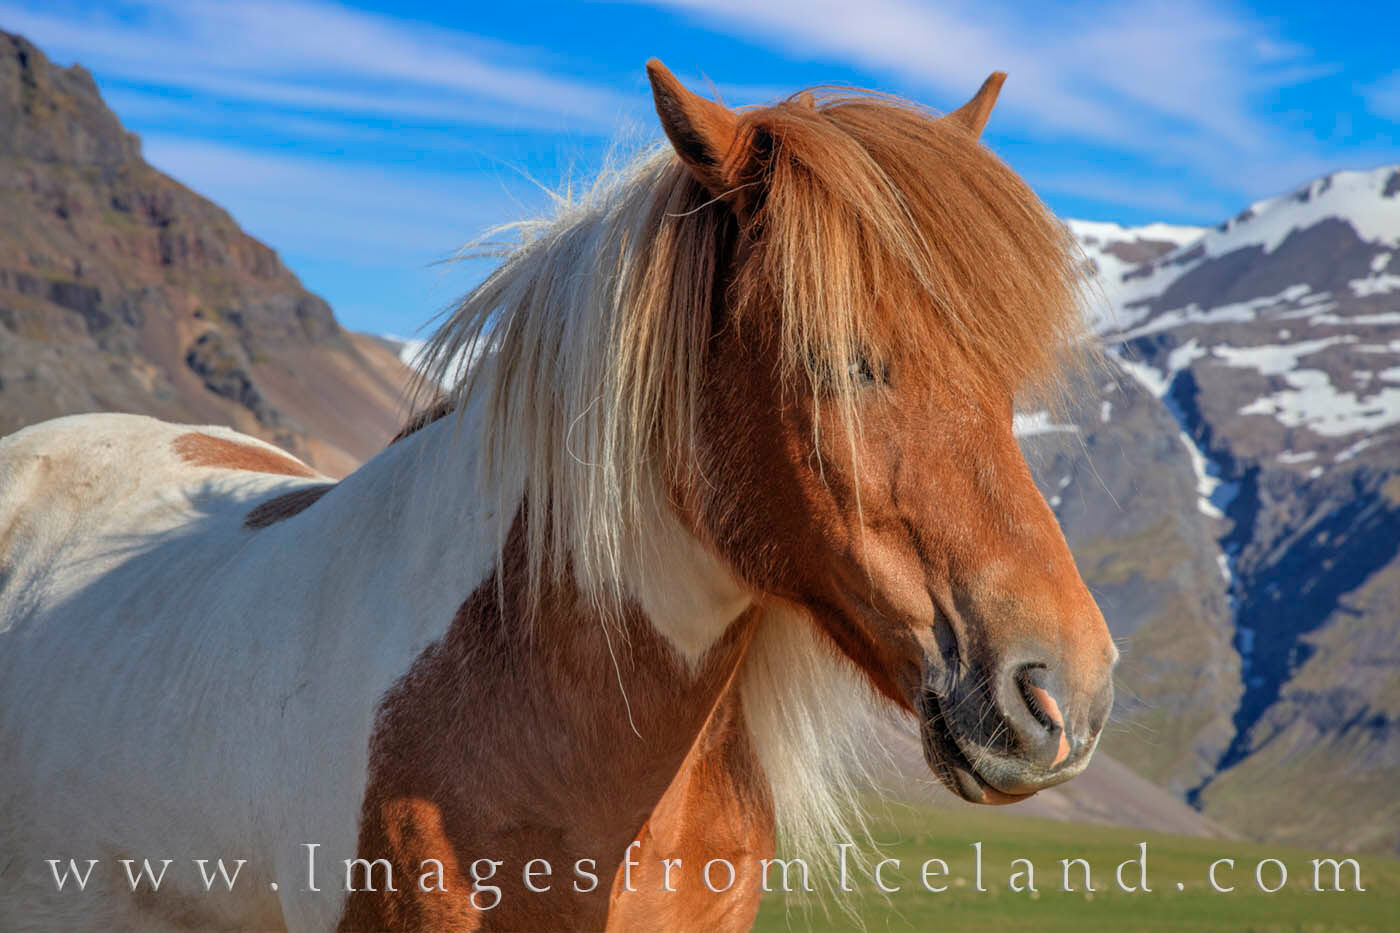 A beautiful Icelandic horse basks in the warm morning light in west Iceland.